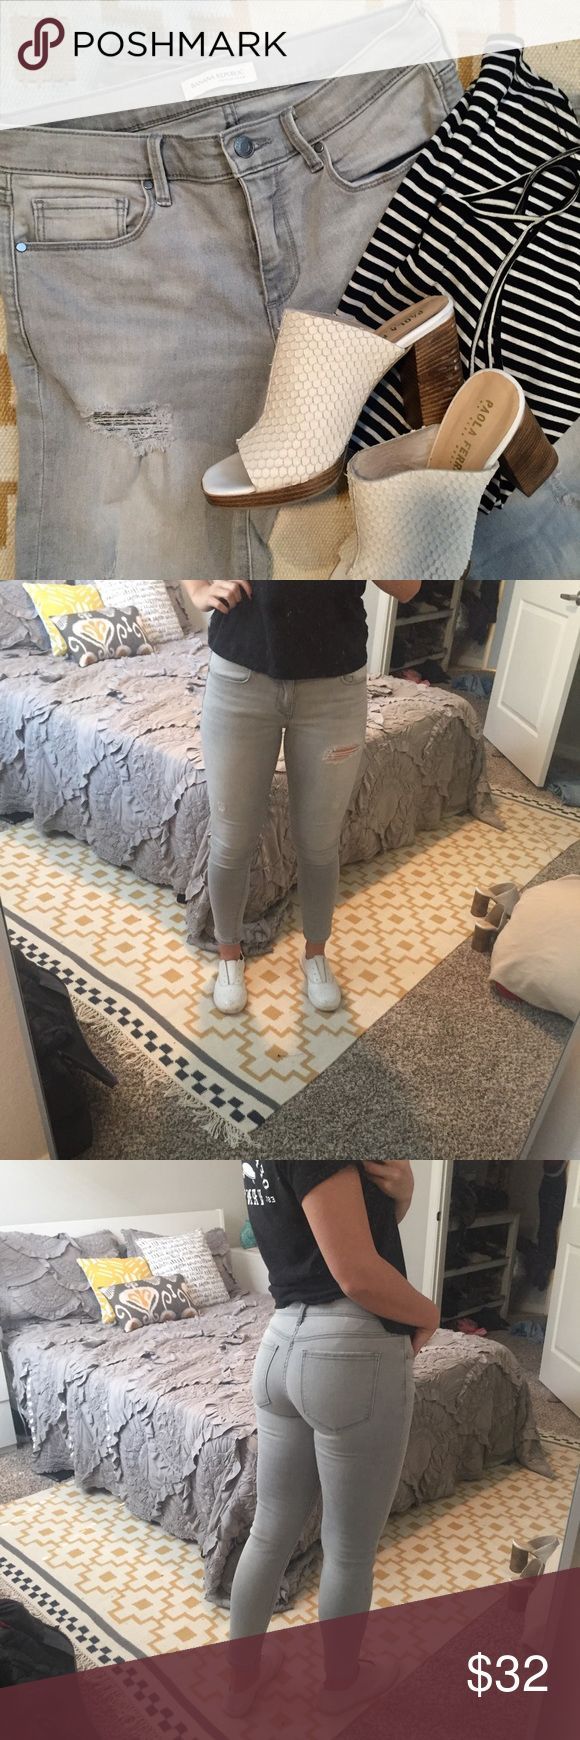 Banana Republic Grey Skinny Jean Banana Republic Grey Skinny Jean. Stretchy fit that stays in place through multiple wears. This pair has been worn once (I own the same pair in a different color). Banana Republic Jeans